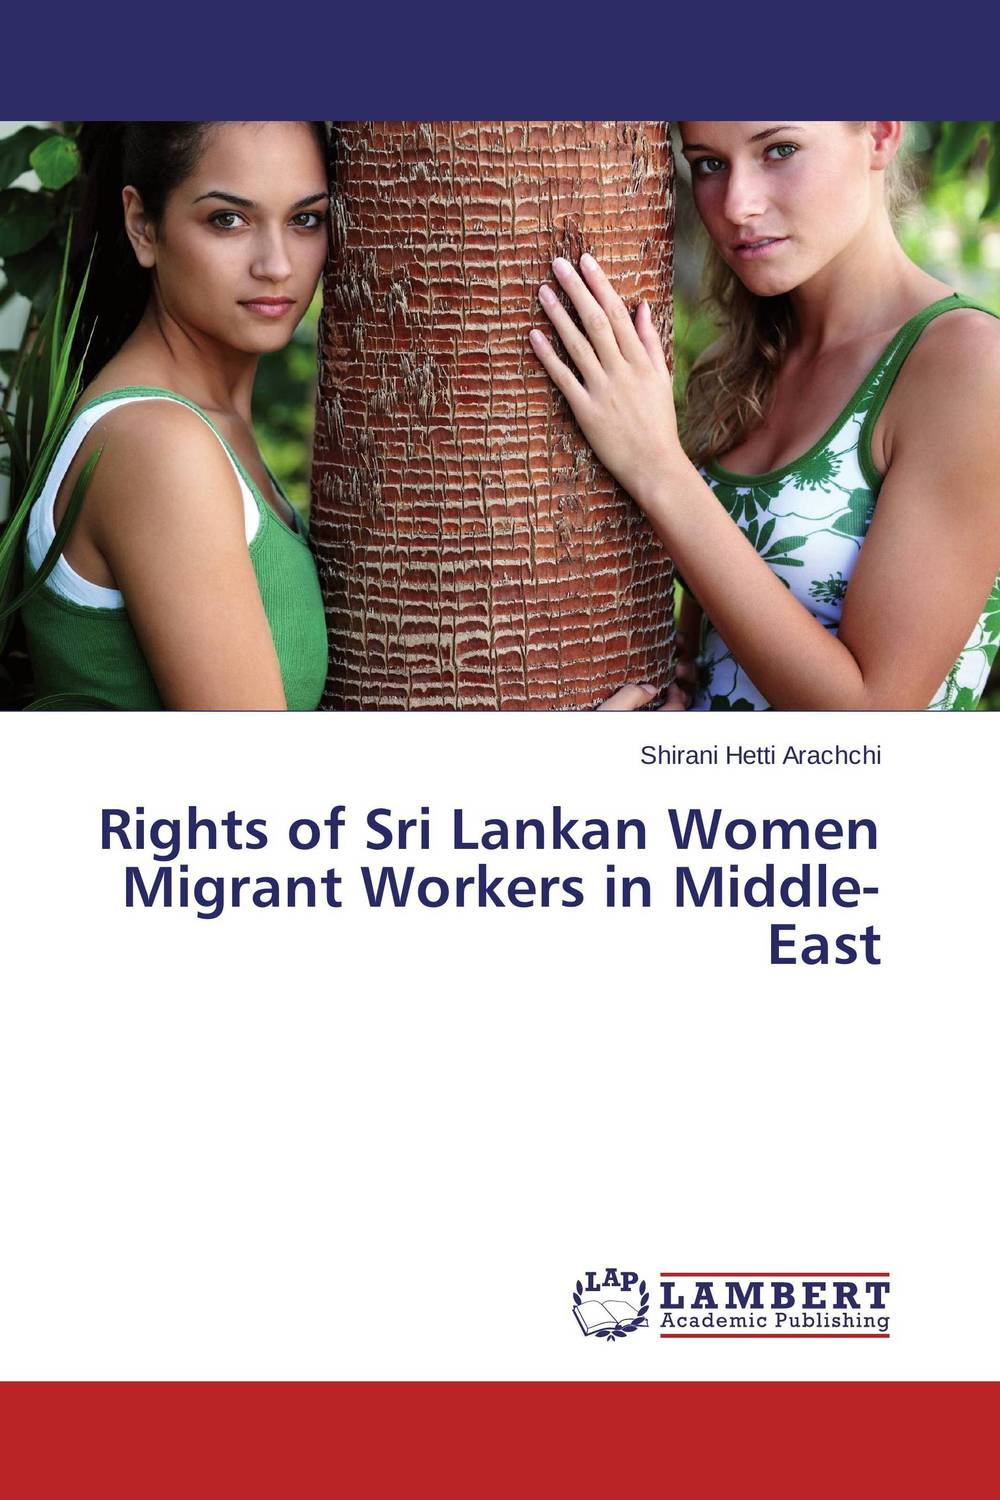 Rights of Sri Lankan Women Migrant Workers in Middle-East паяльник bao workers in taiwan pd 372 25mm